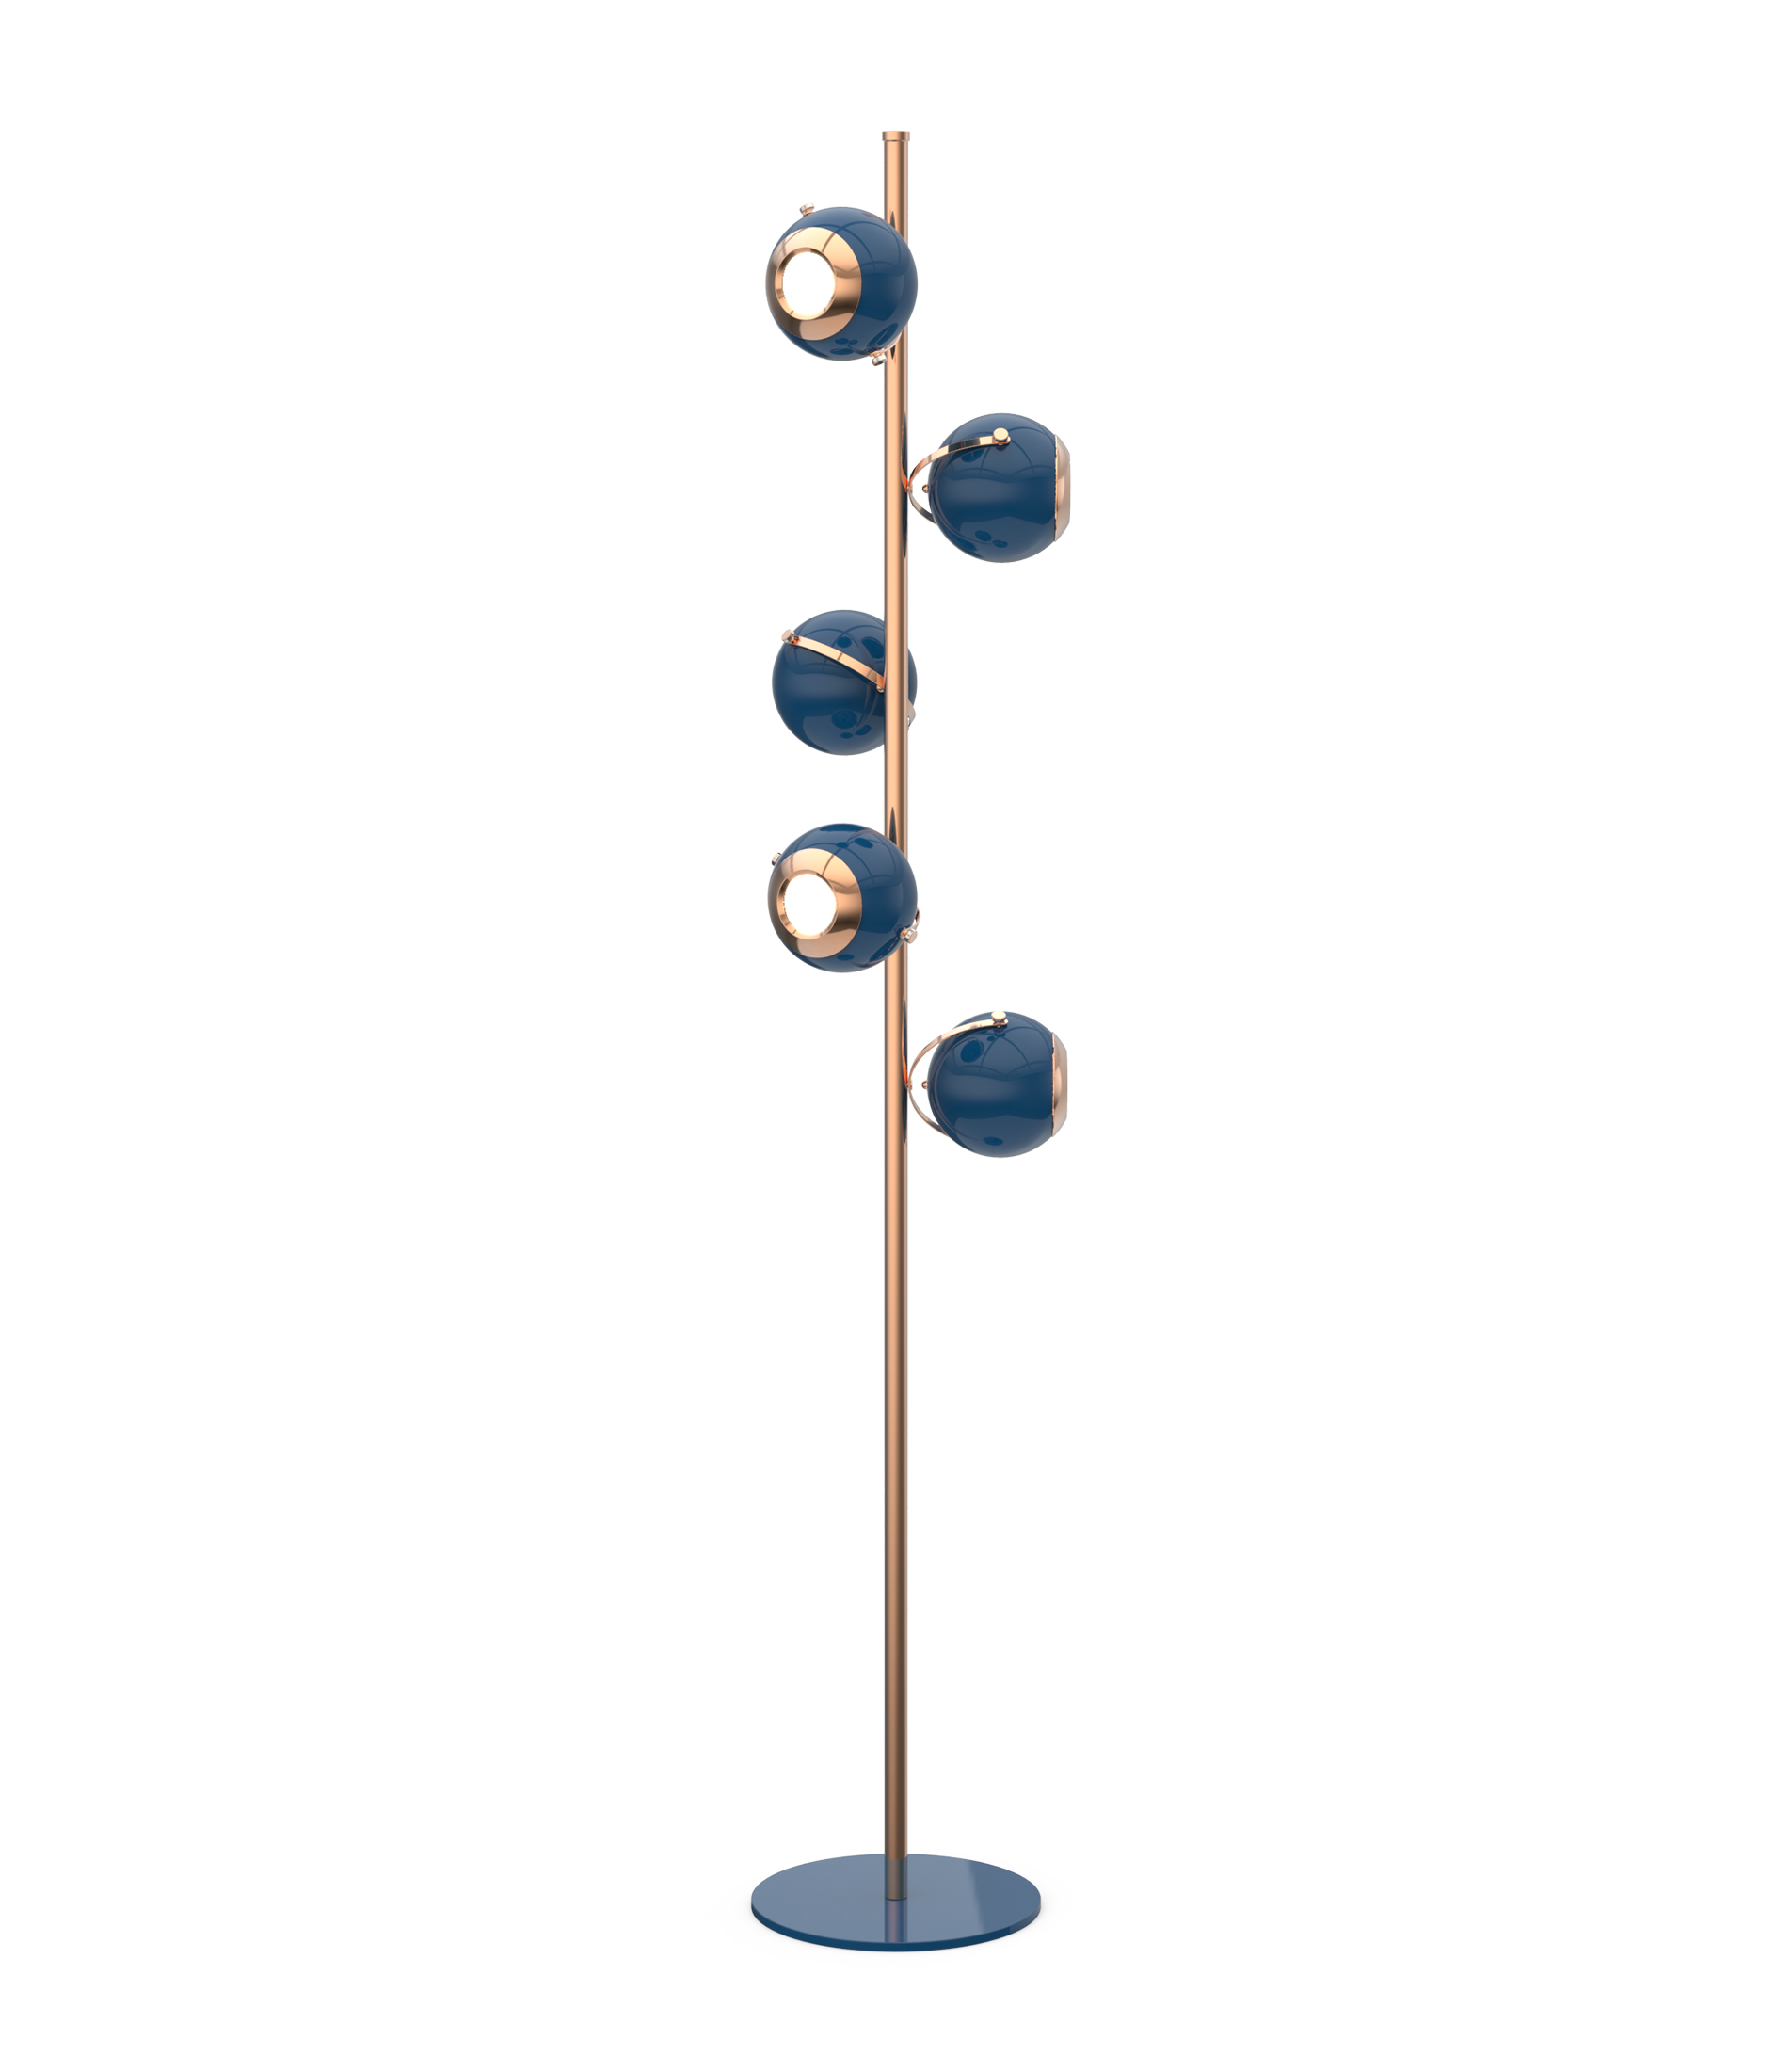 Bright Ideas A Mid-Century Floor Lamp for Your Summer Home Decor 1  Bright Ideas: A Mid-Century Floor Lamp for Your Summer Home Decor Bright Ideas A Mid Century Floor Lamp for Your Summer Home Decor 7